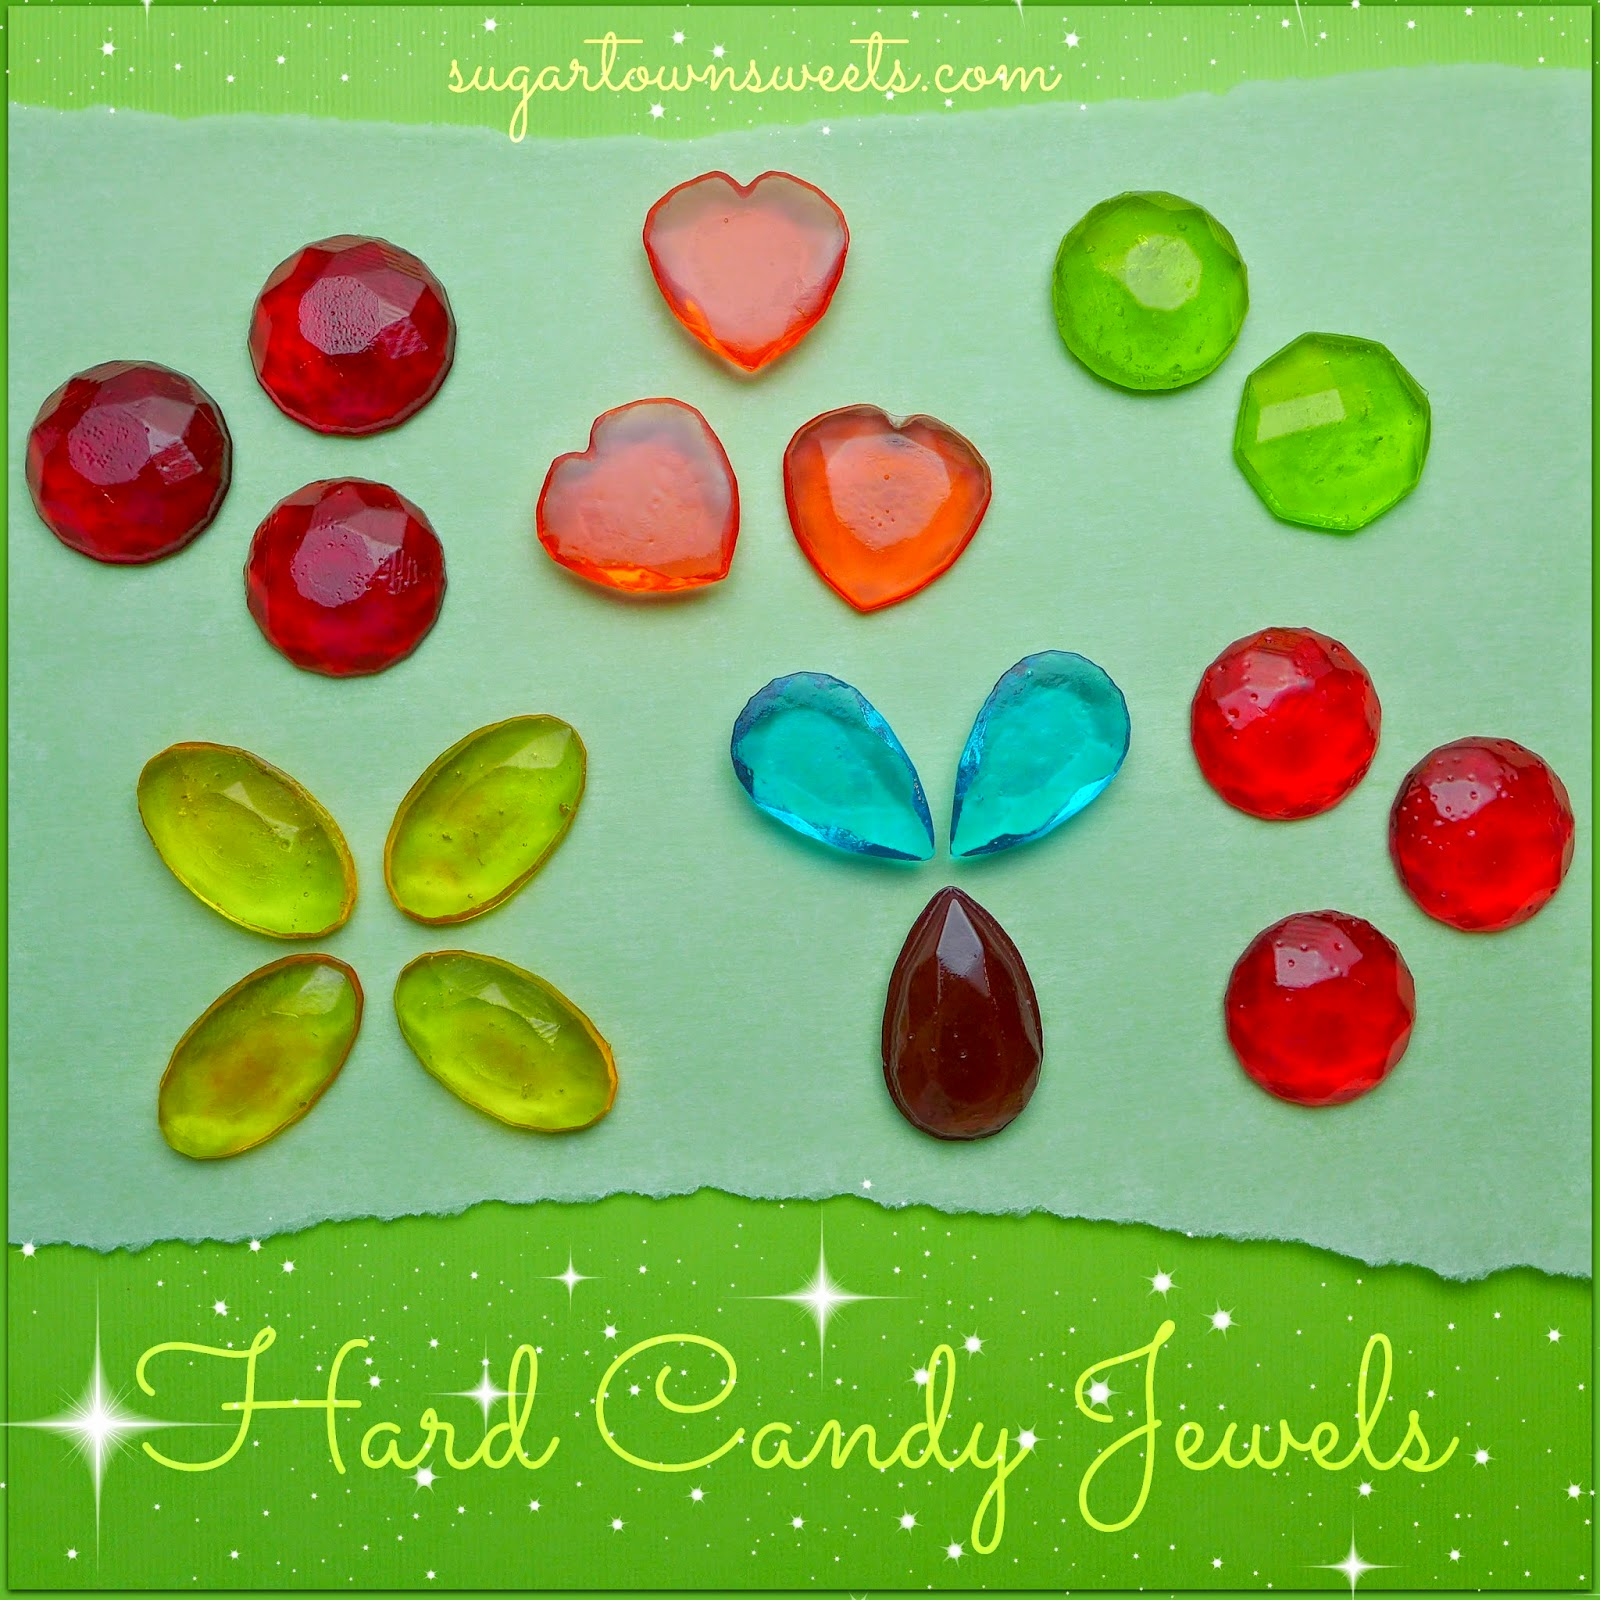 Sugartown Sweets: How to Make Hard Candy Jewels Using Melted